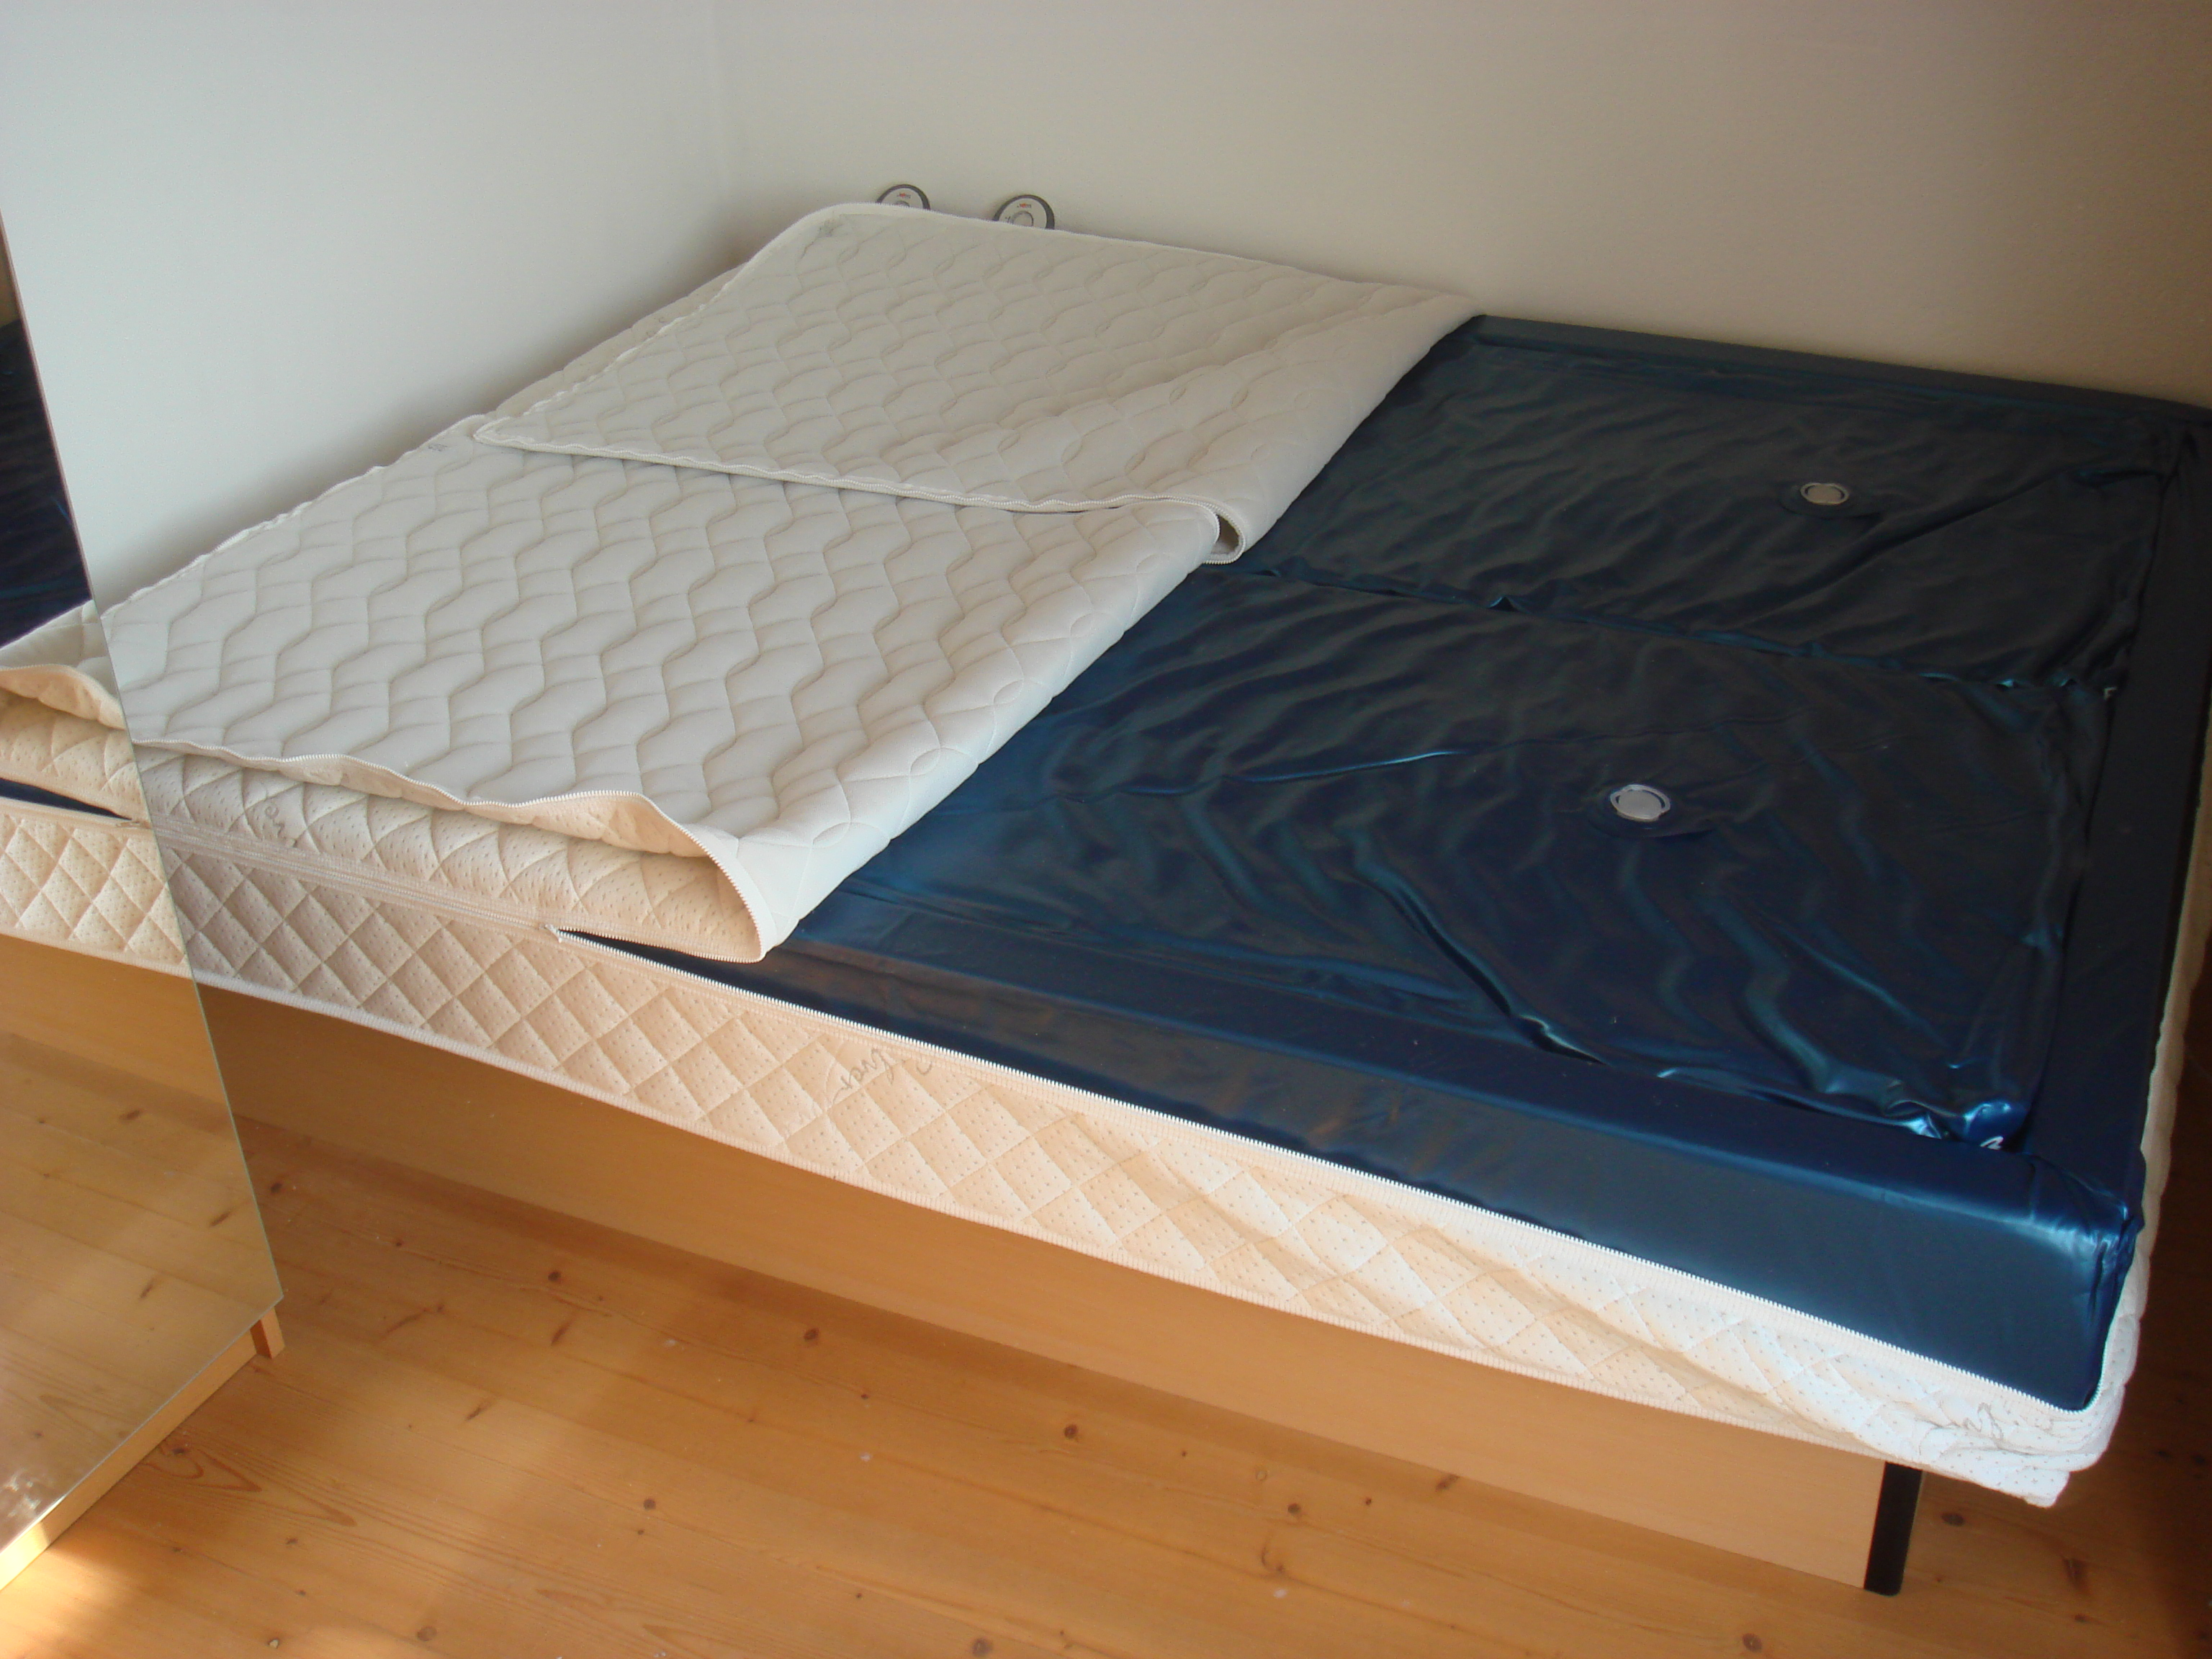 File Softside Waterbed Inside JPG